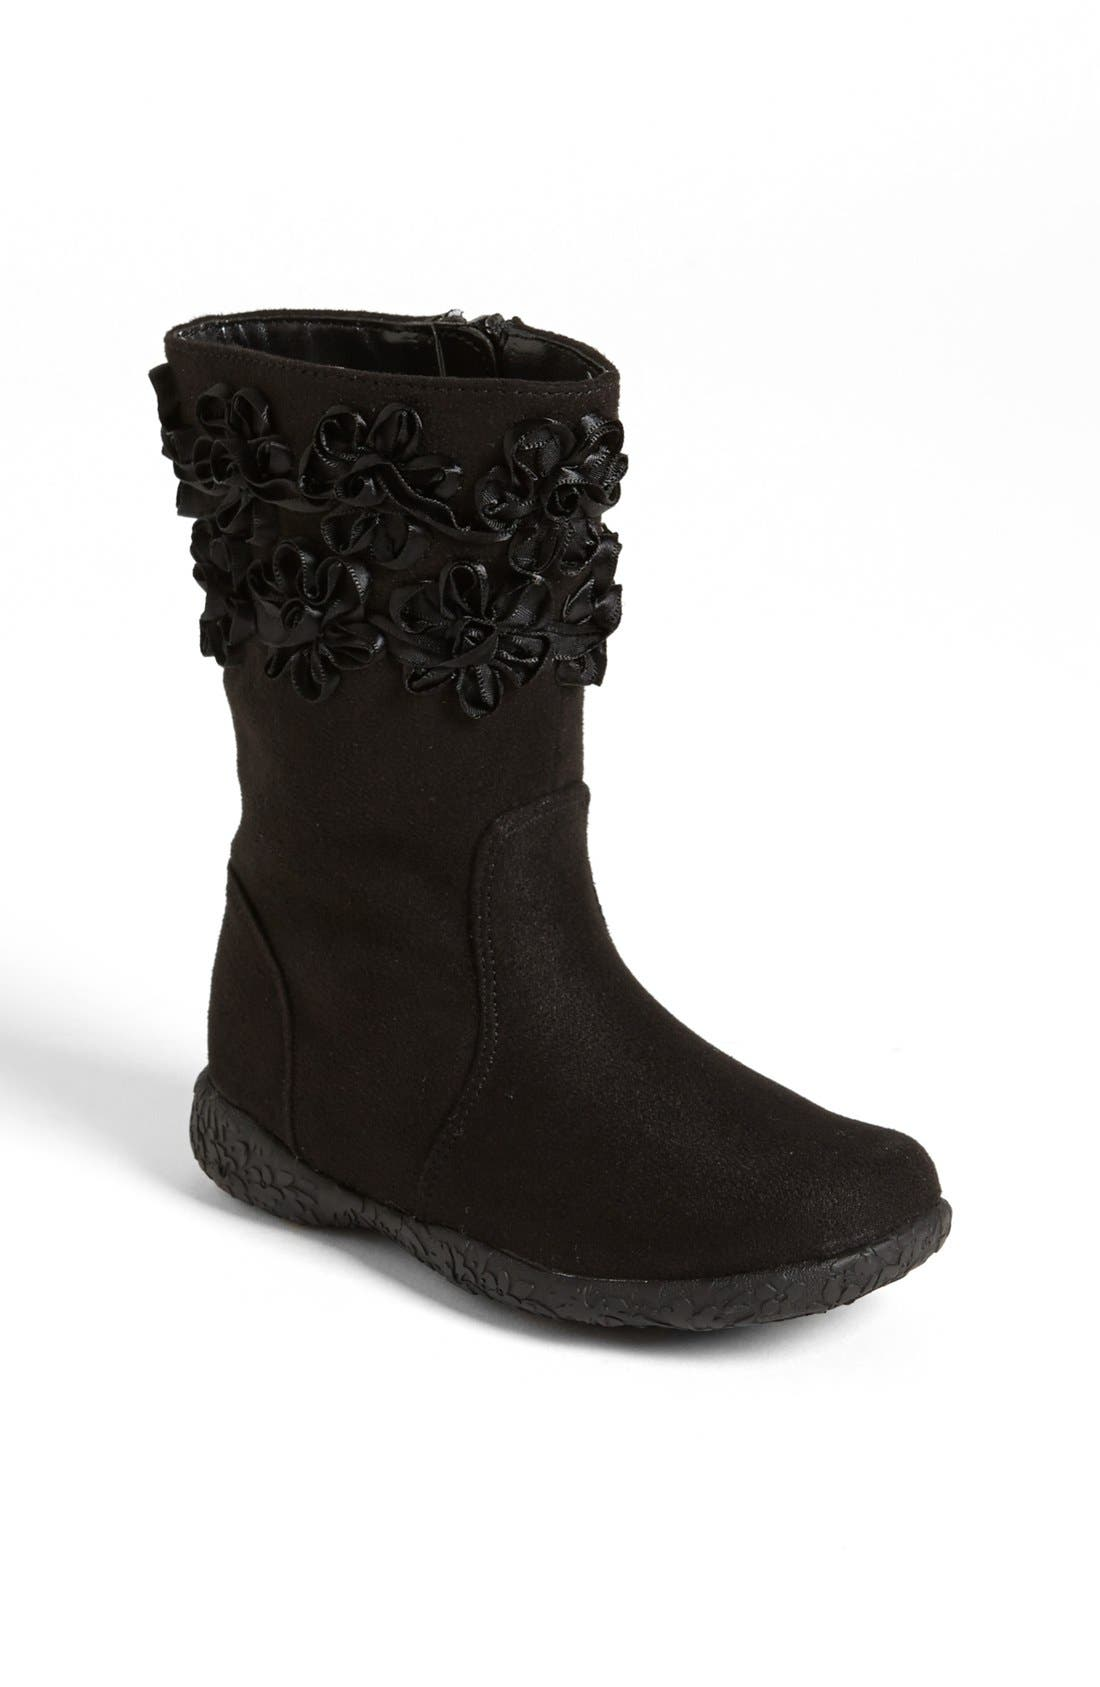 Alternate Image 1 Selected - Nina 'Patches' Boot (Walker & Toddler)